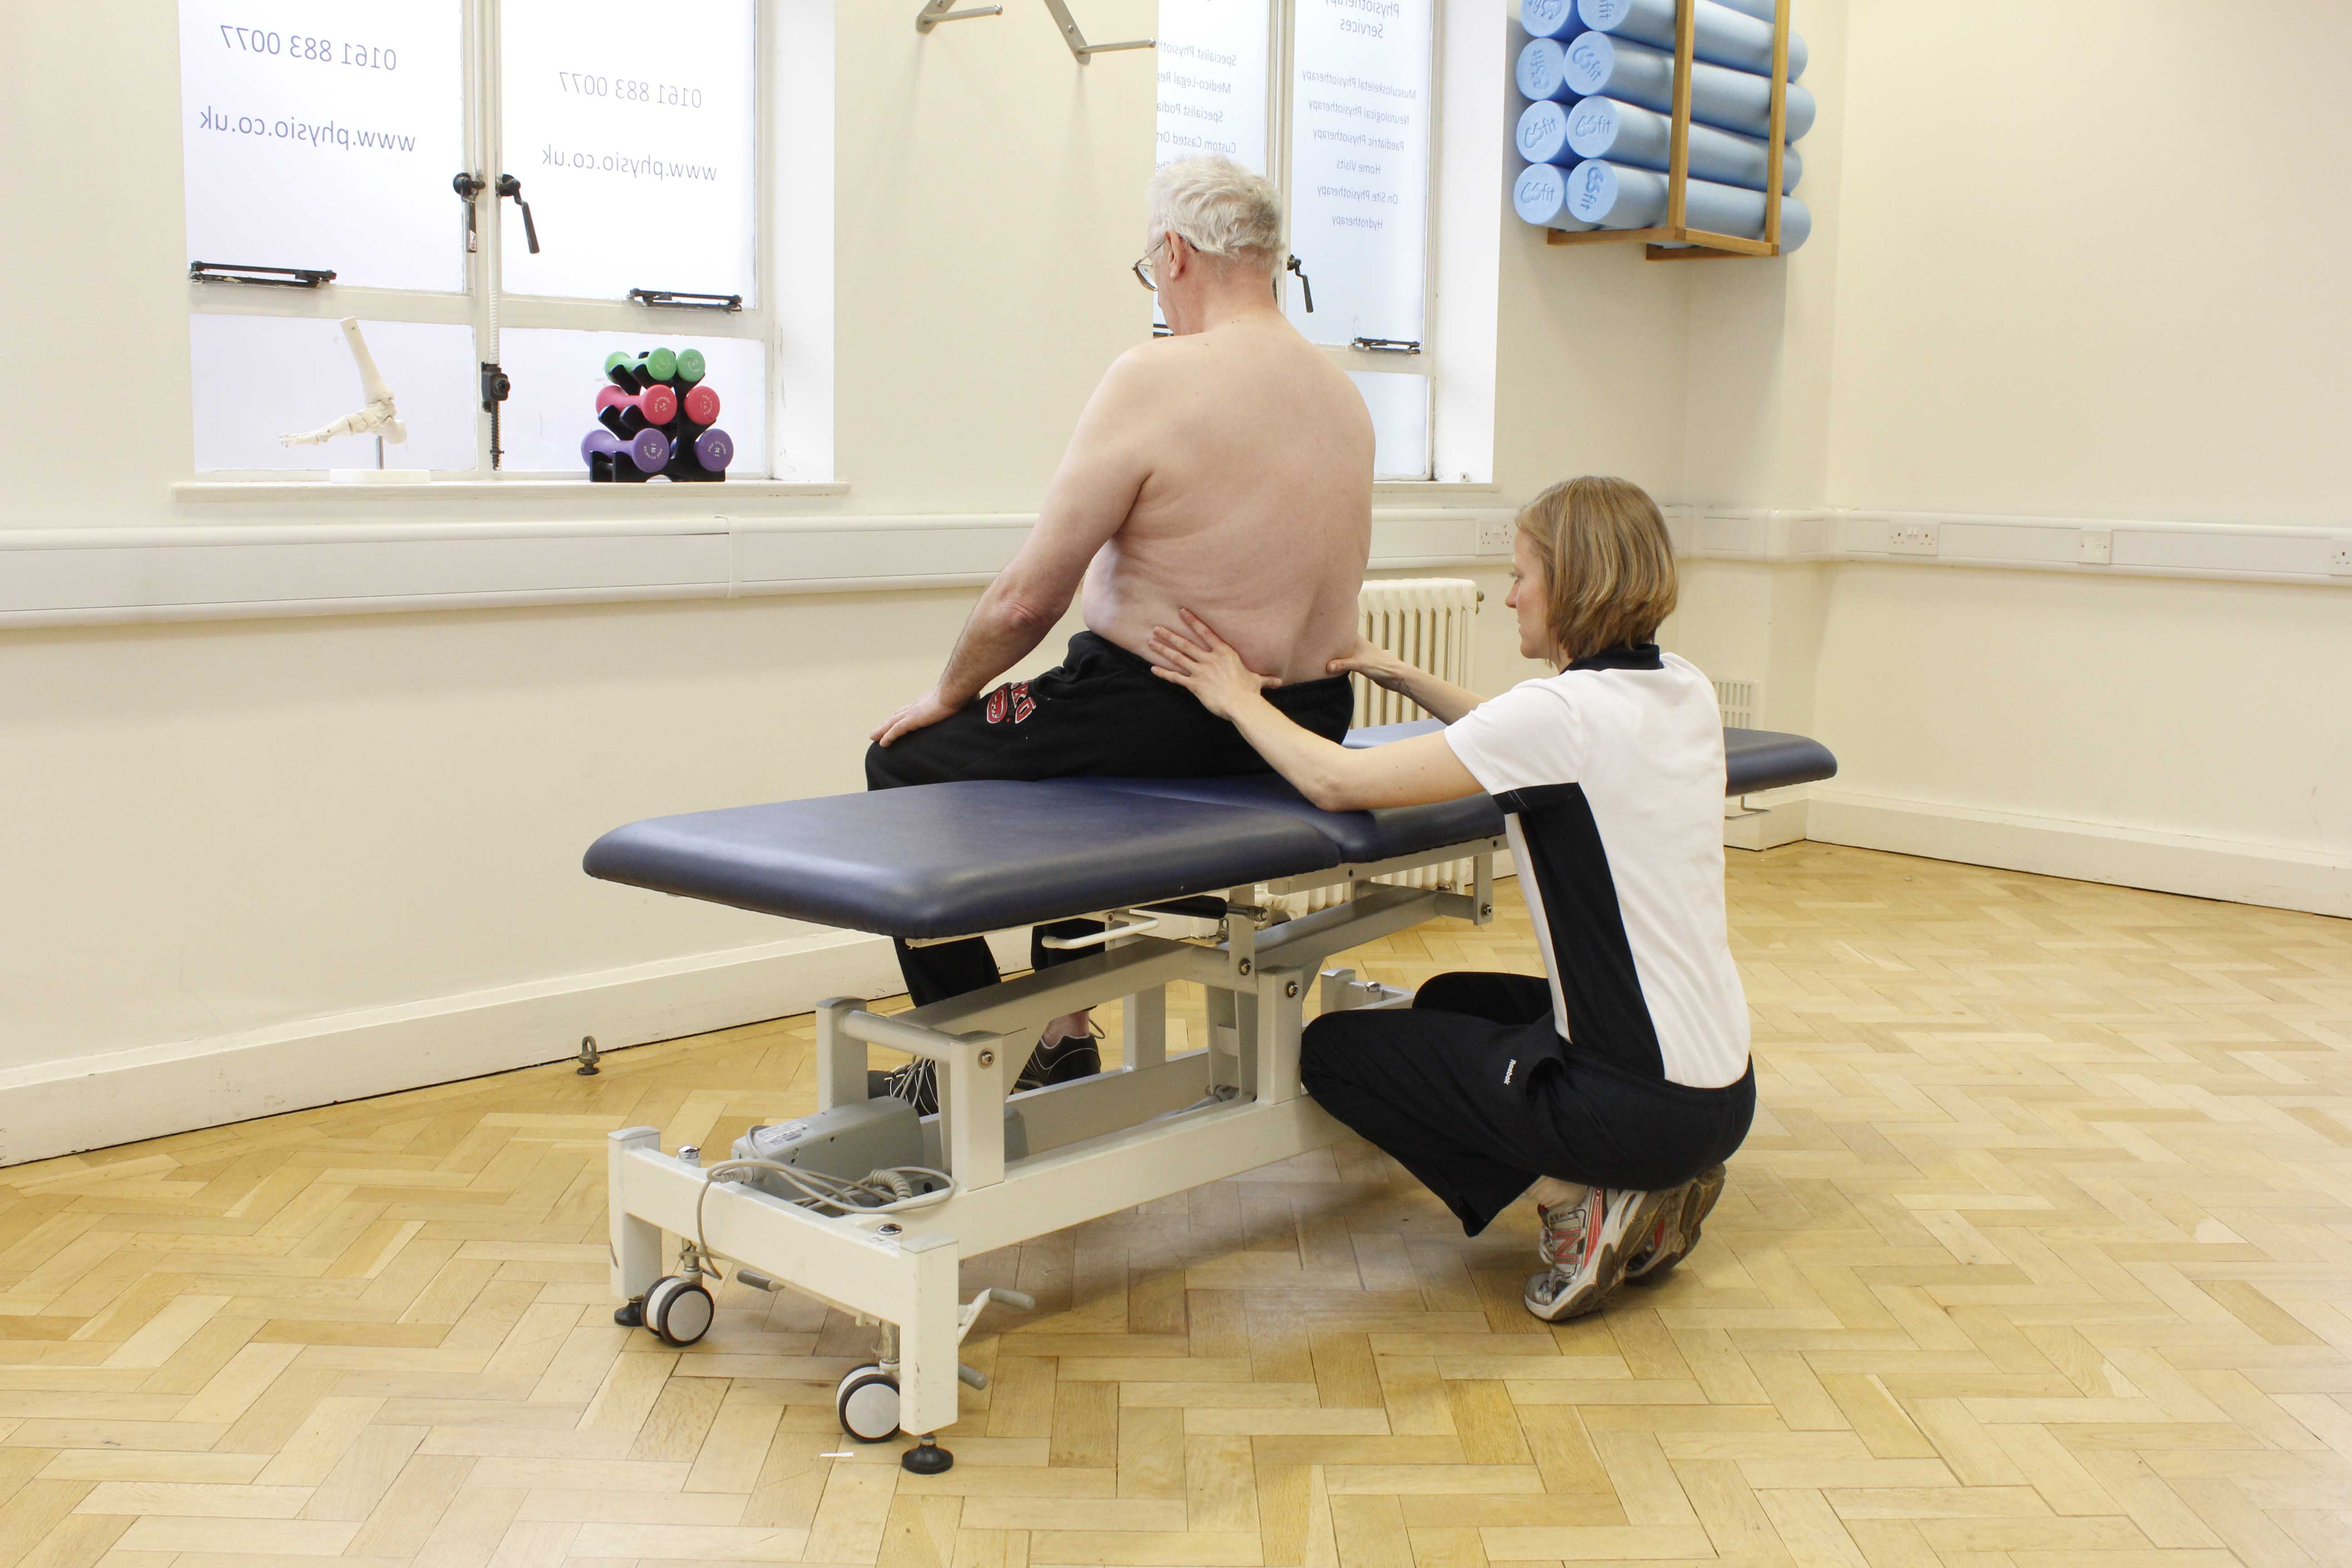 Lower back assessment by physiotherapist to identify cause of muscular spasm